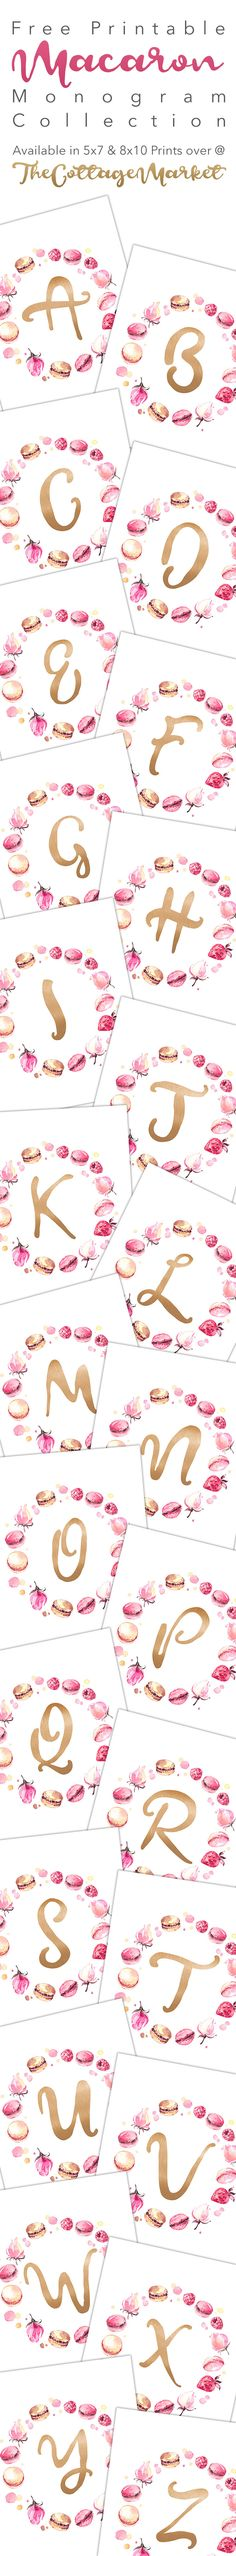 Free Printable Macaron Monogram Collection - The Cottage Market shared at Katherines Corner